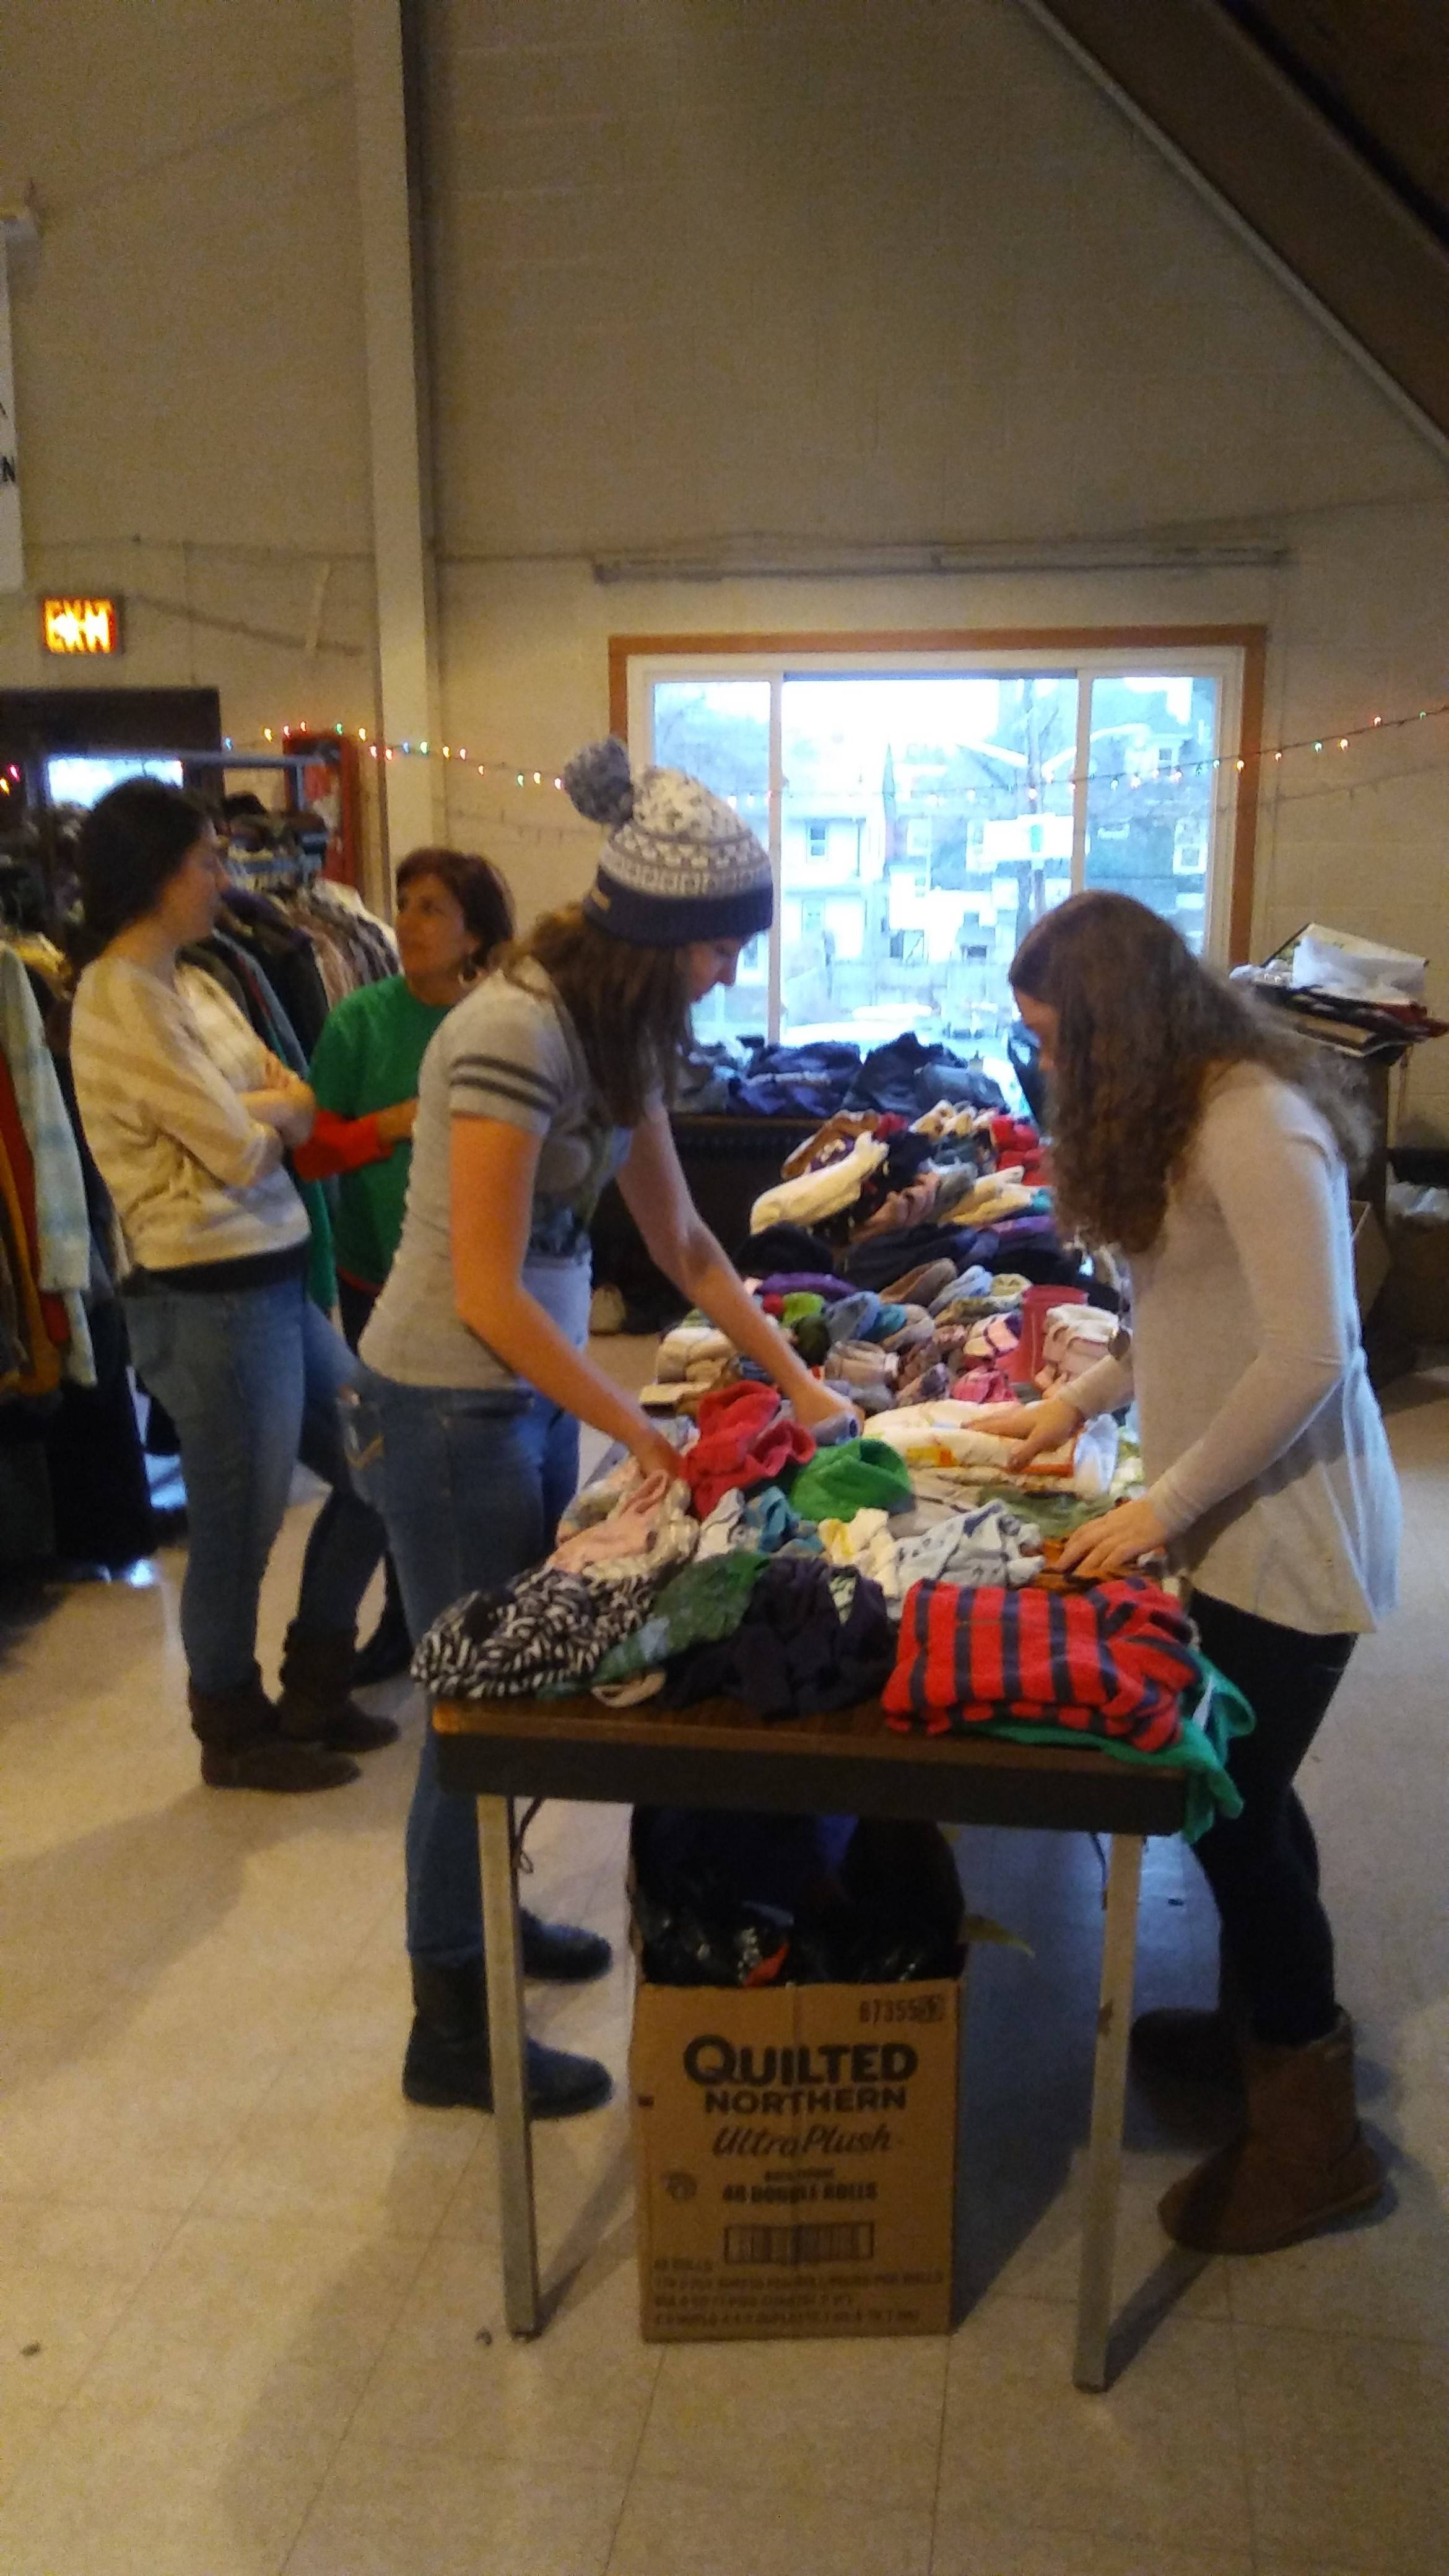 4ccfeea02b9130017352_The_First_Pres_Cranford_Youth_Group_sorting_through_donated_clothing.jpg